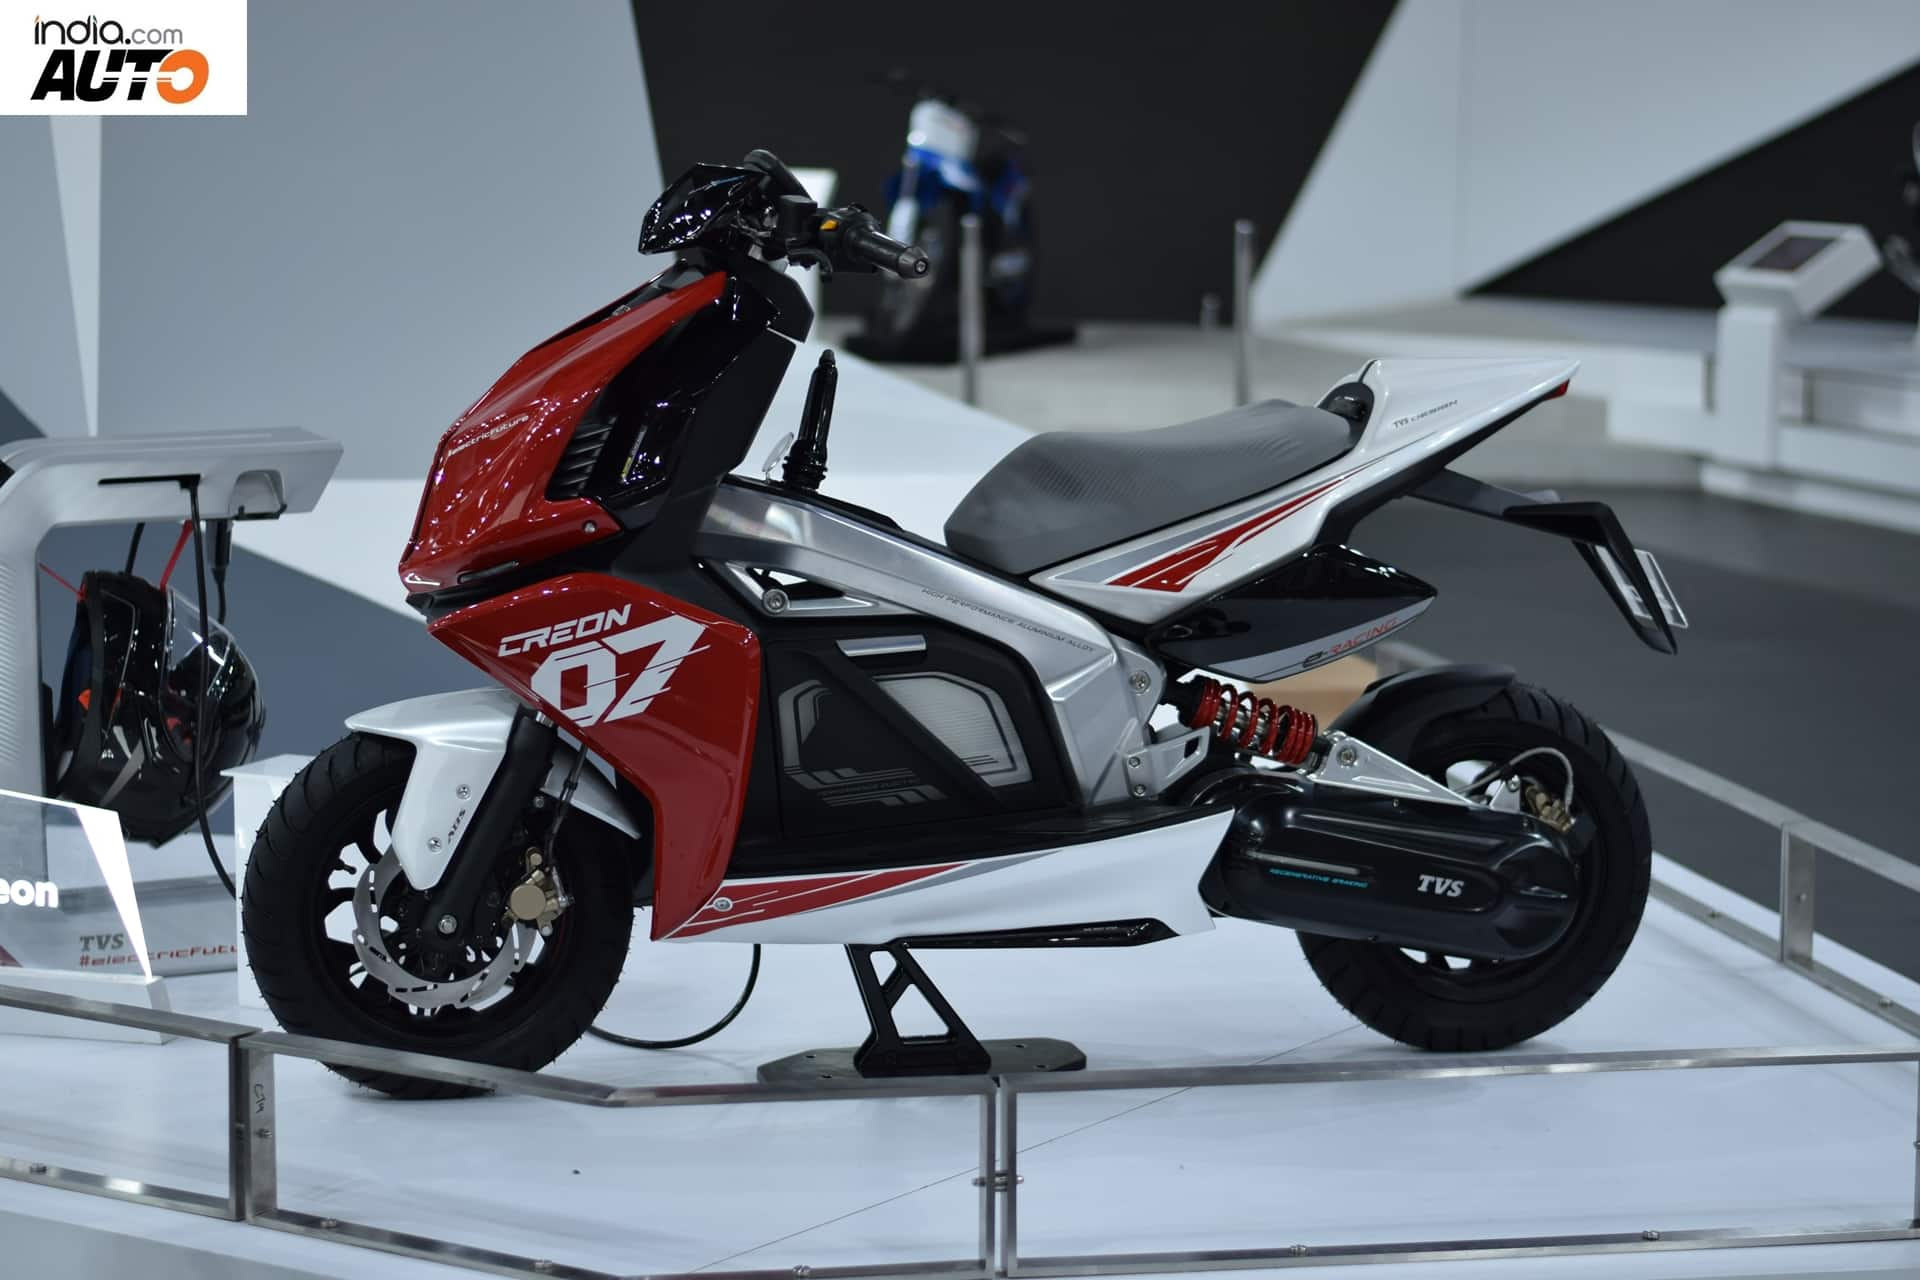 TVS Creon Electric Scooter Concept Showcased at Auto Expo 2018: Price in India, Specs, Features, Dimensions